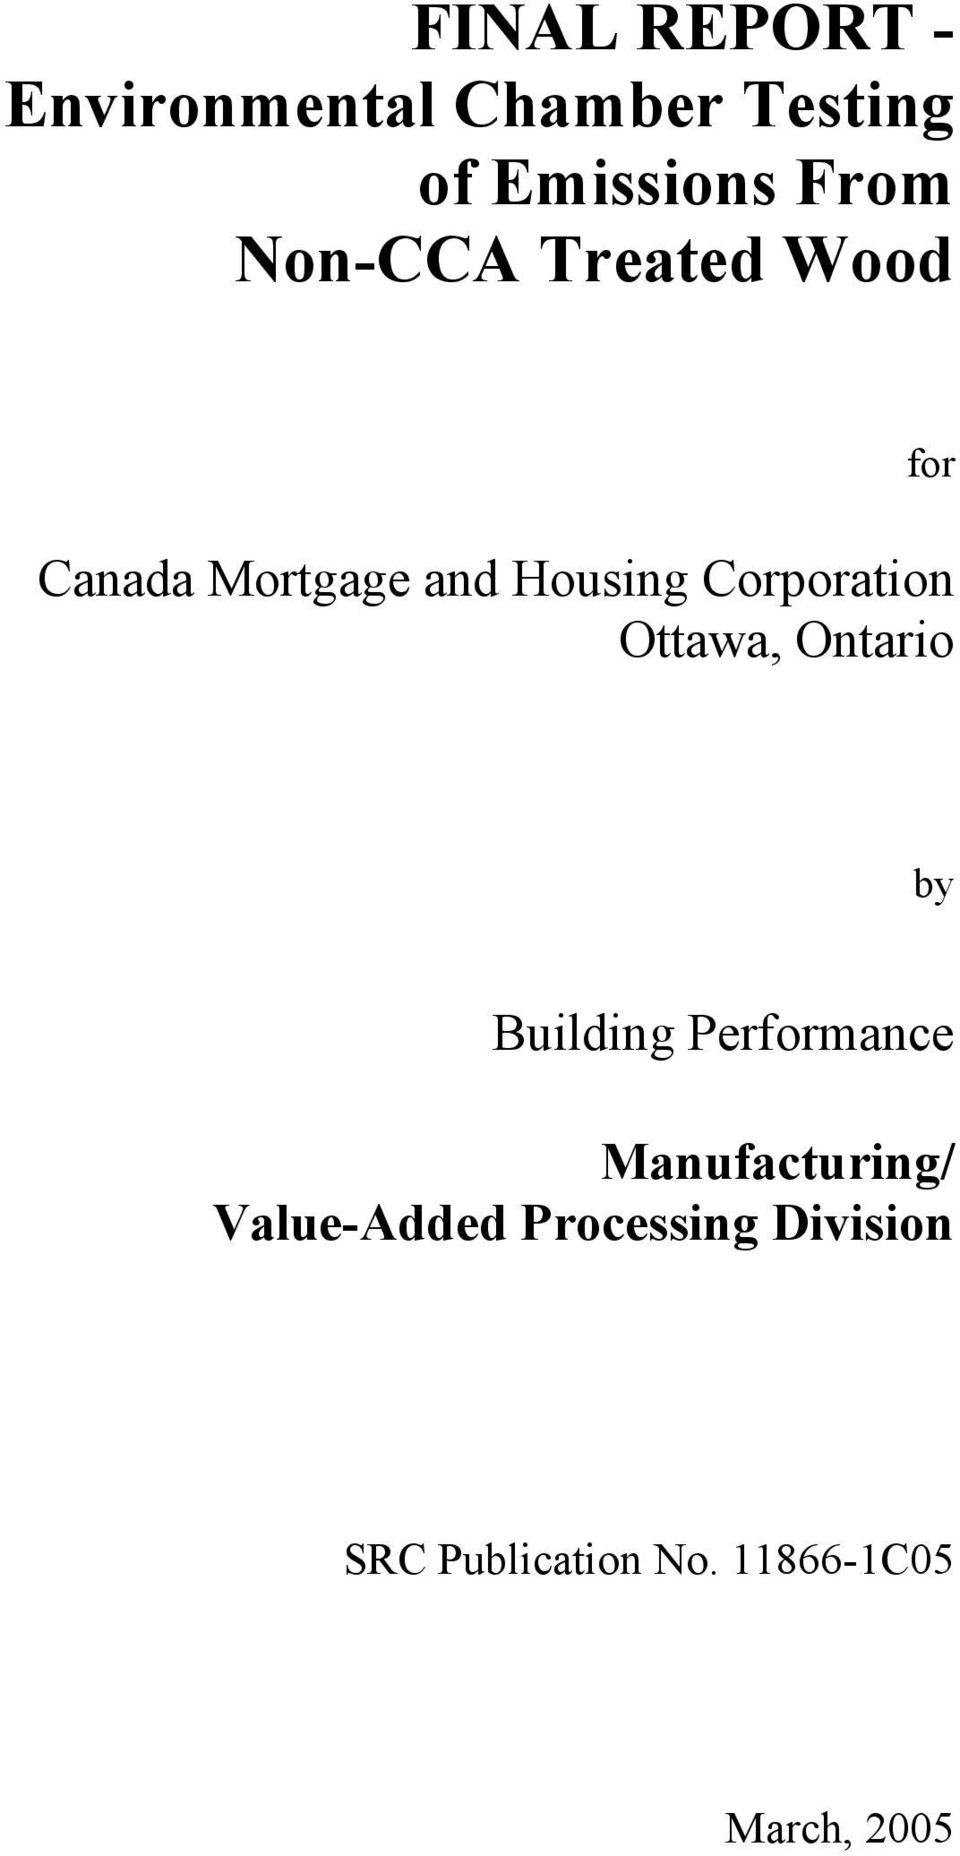 Ottawa, Ontario by Building Performance Manufacturing/